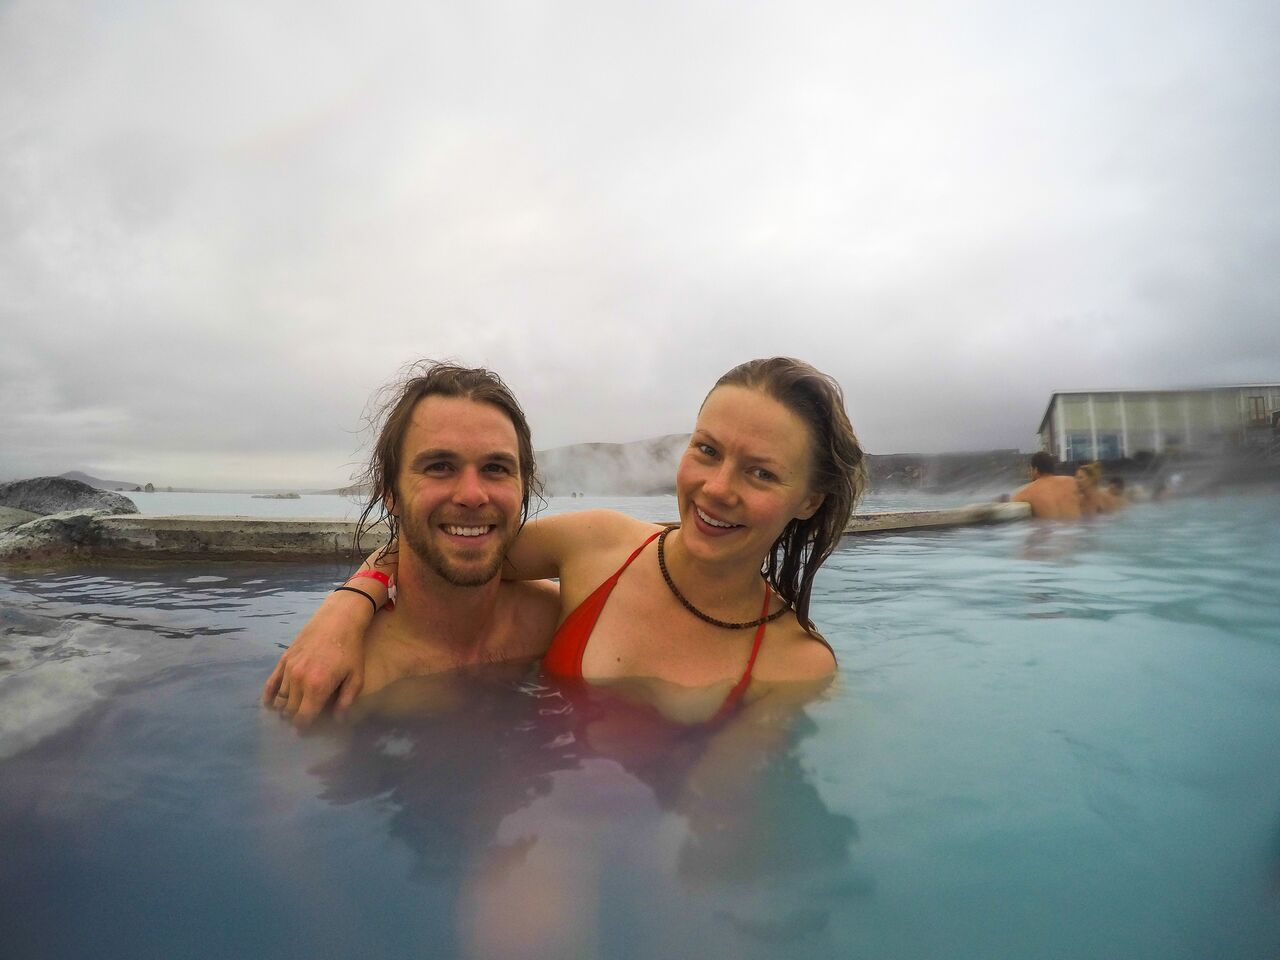 iceland_gopro-127_preview.jpg